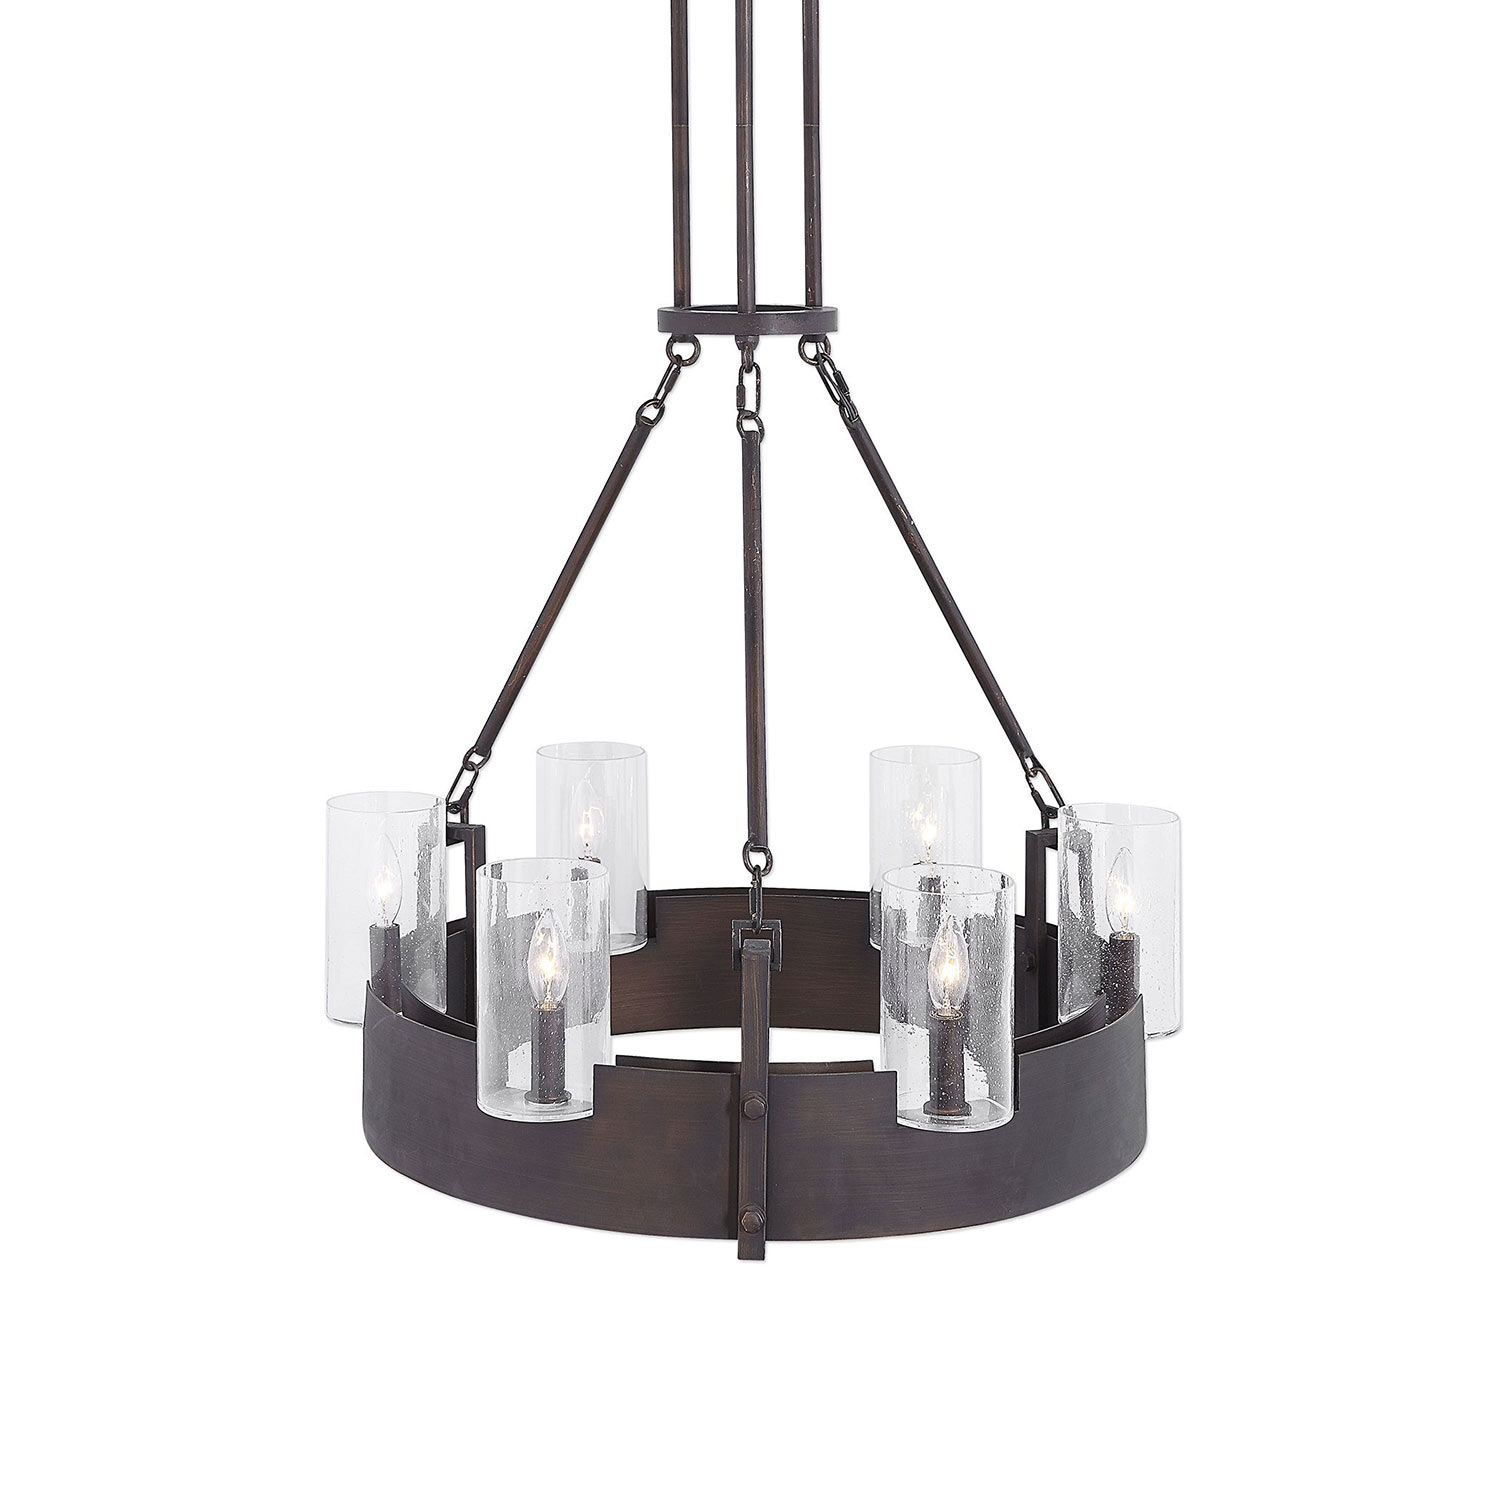 Uttermost Pinecroft 6-Light Circular Chandelier